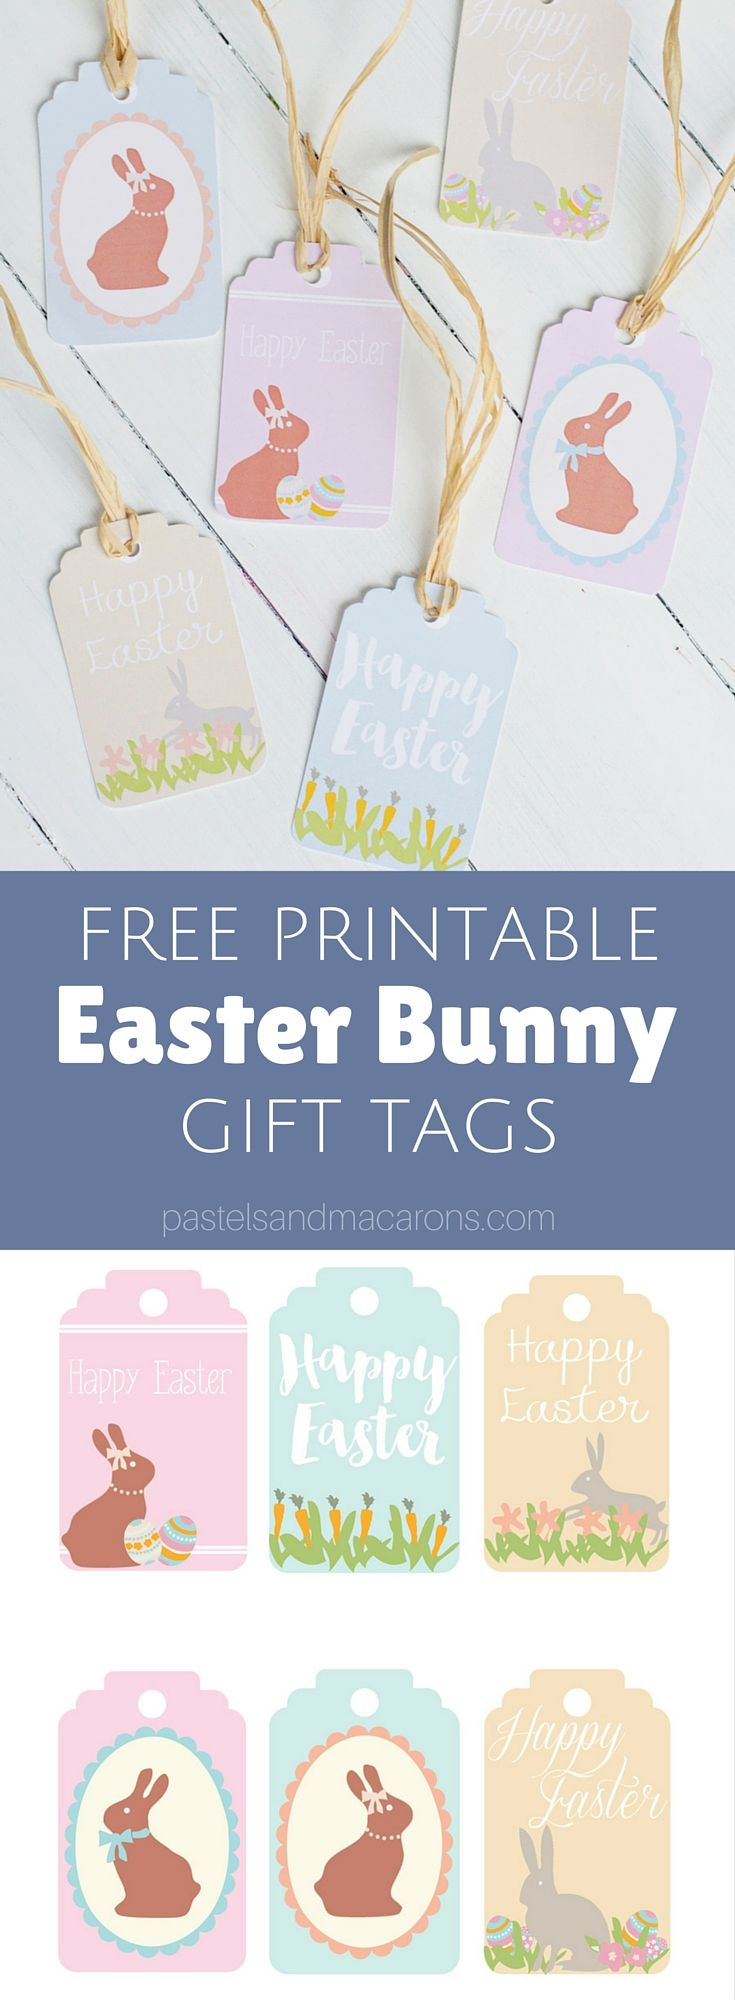 172 best printable goodies images on pinterest free printables download these adorable easter gift tags printable for free negle Choice Image